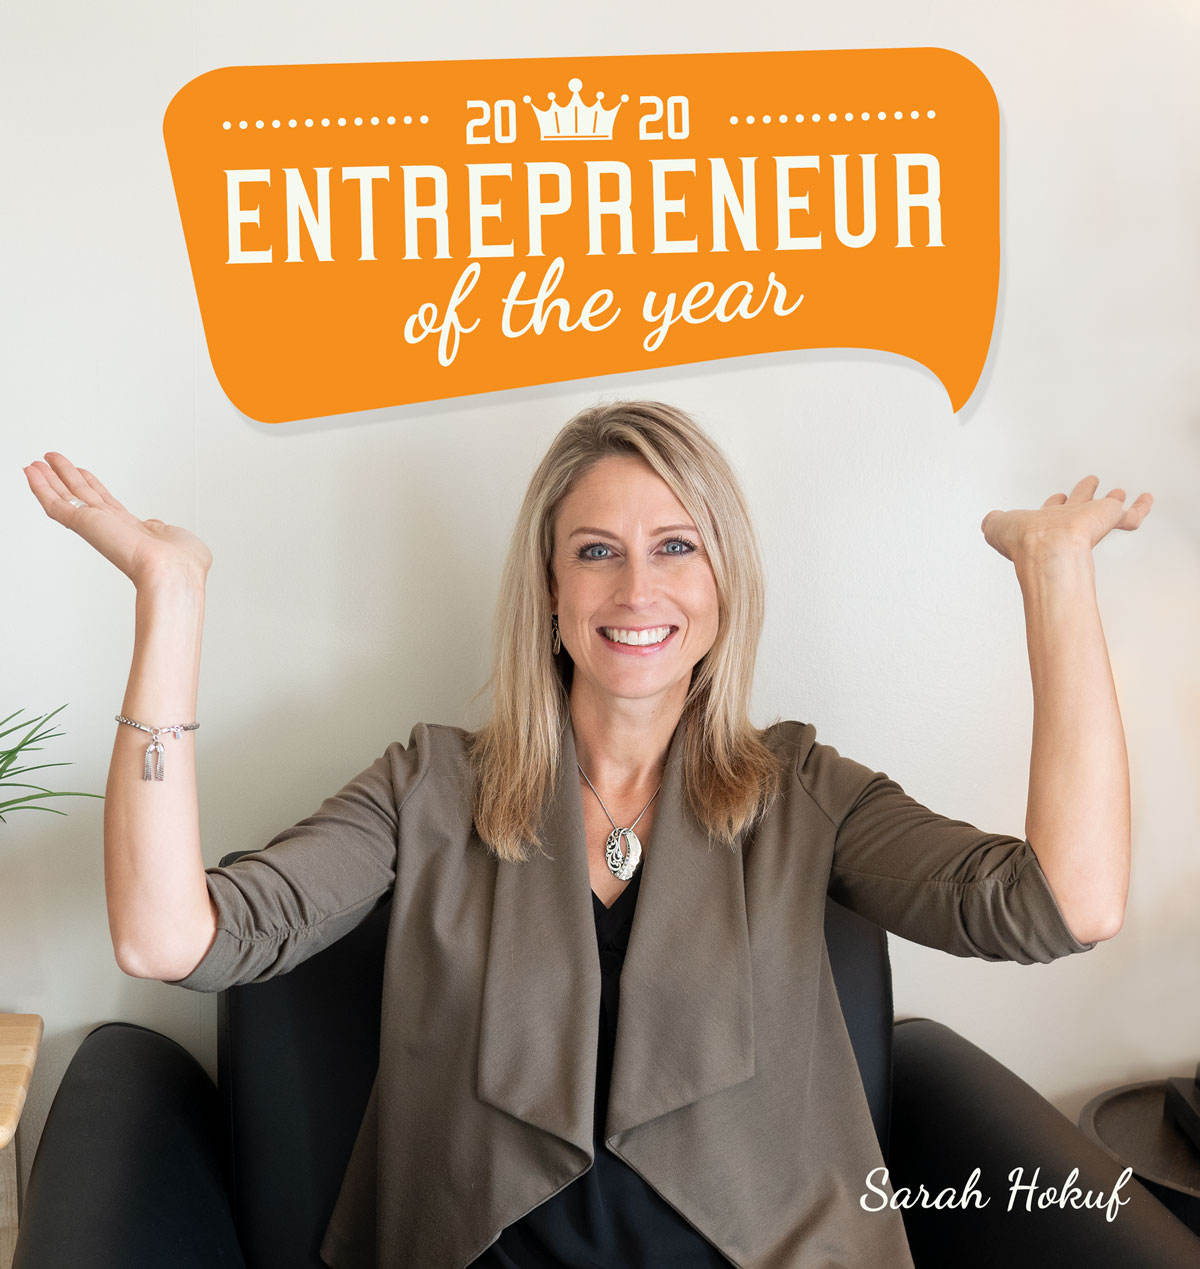 Sarah Hokuf wins Entrepreneur of the Year Award